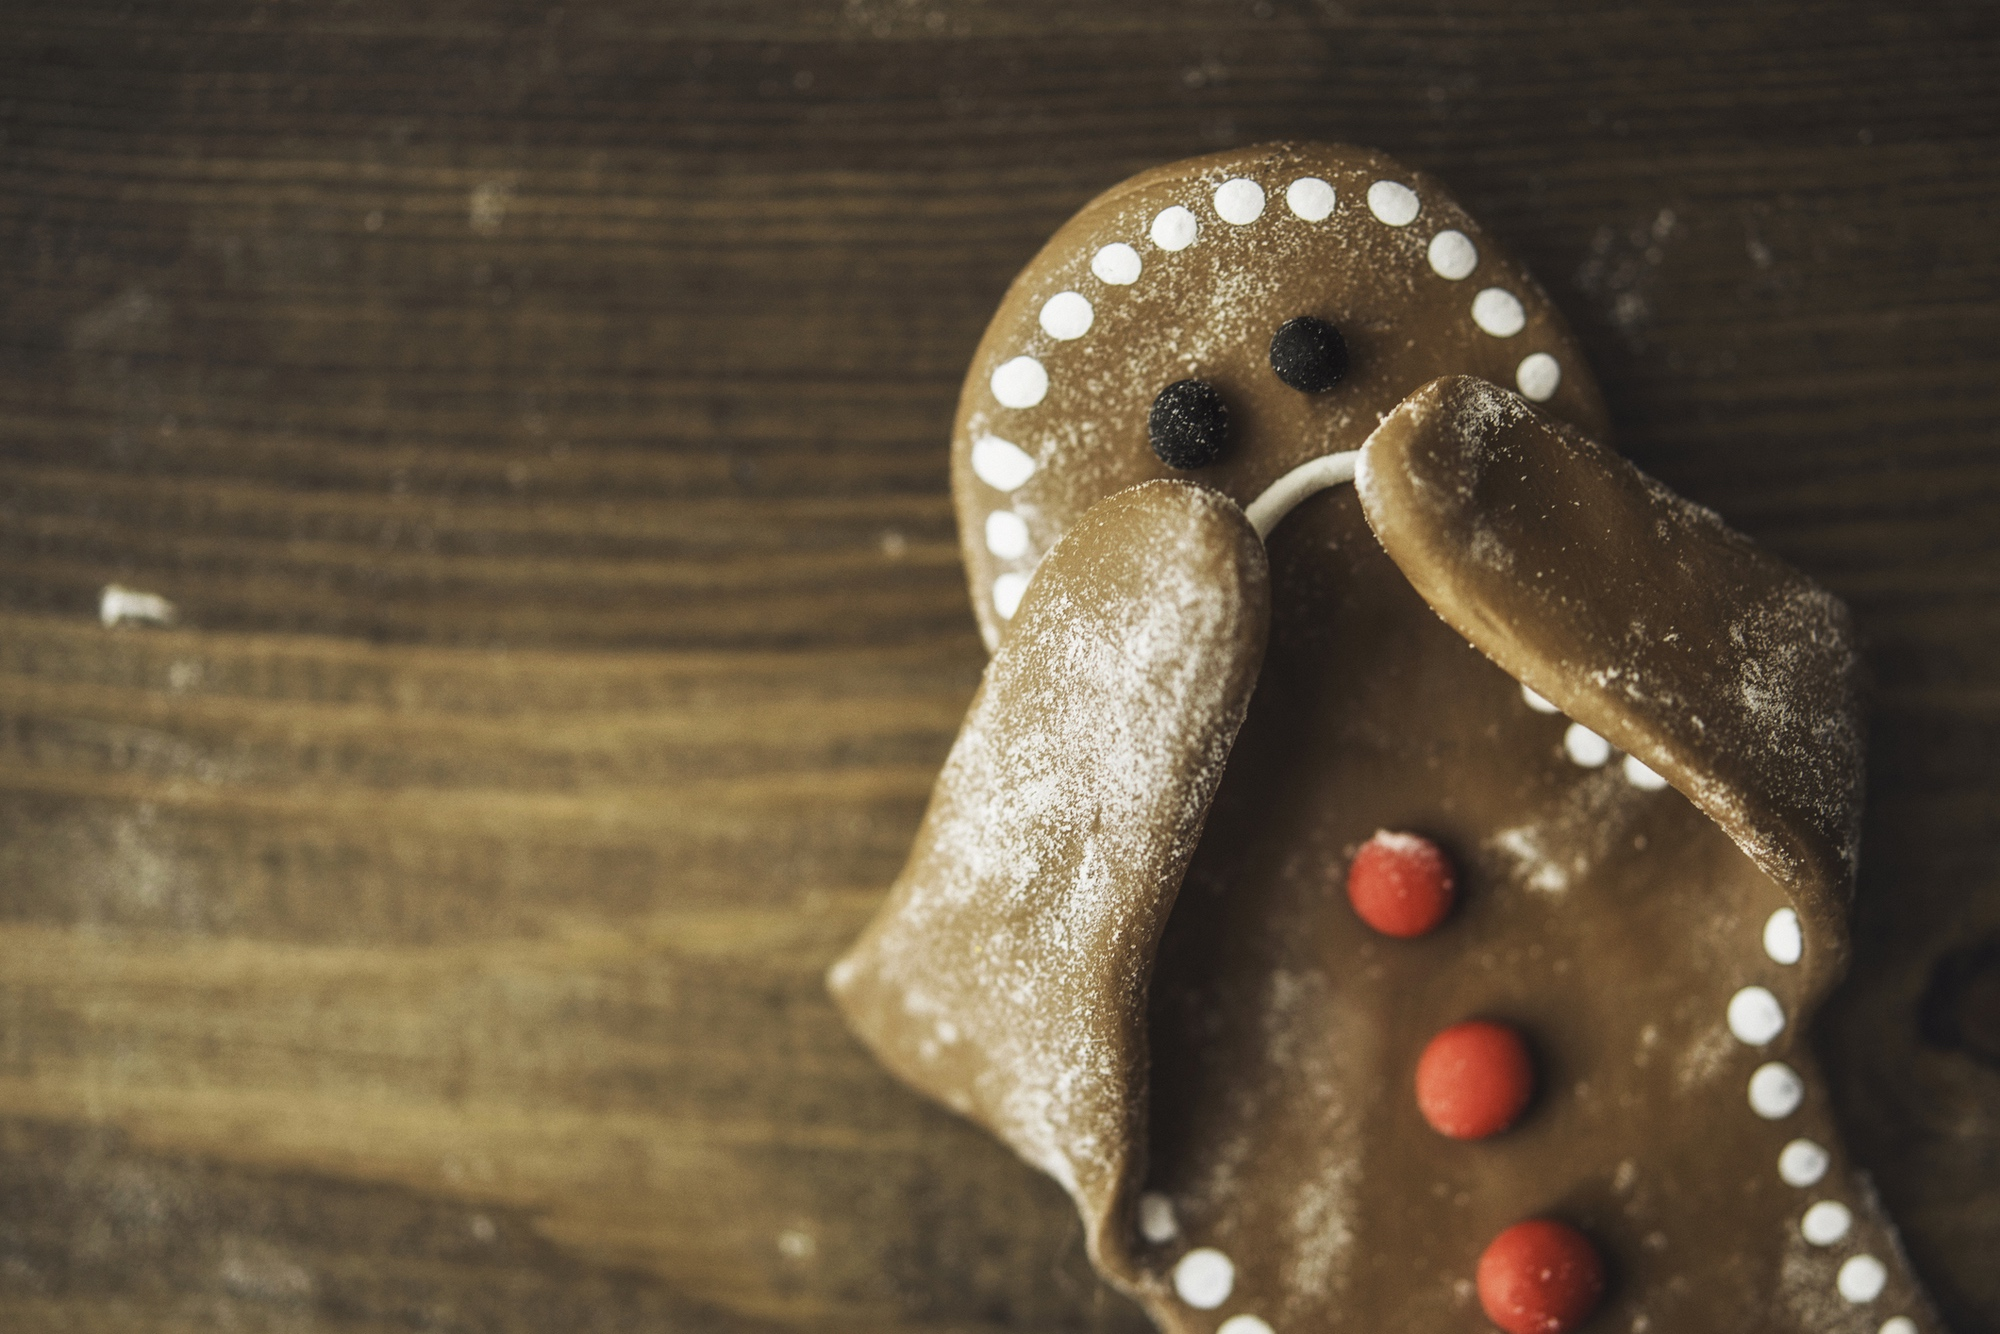 Sad Gingerbread Boy with Hands Up to Face